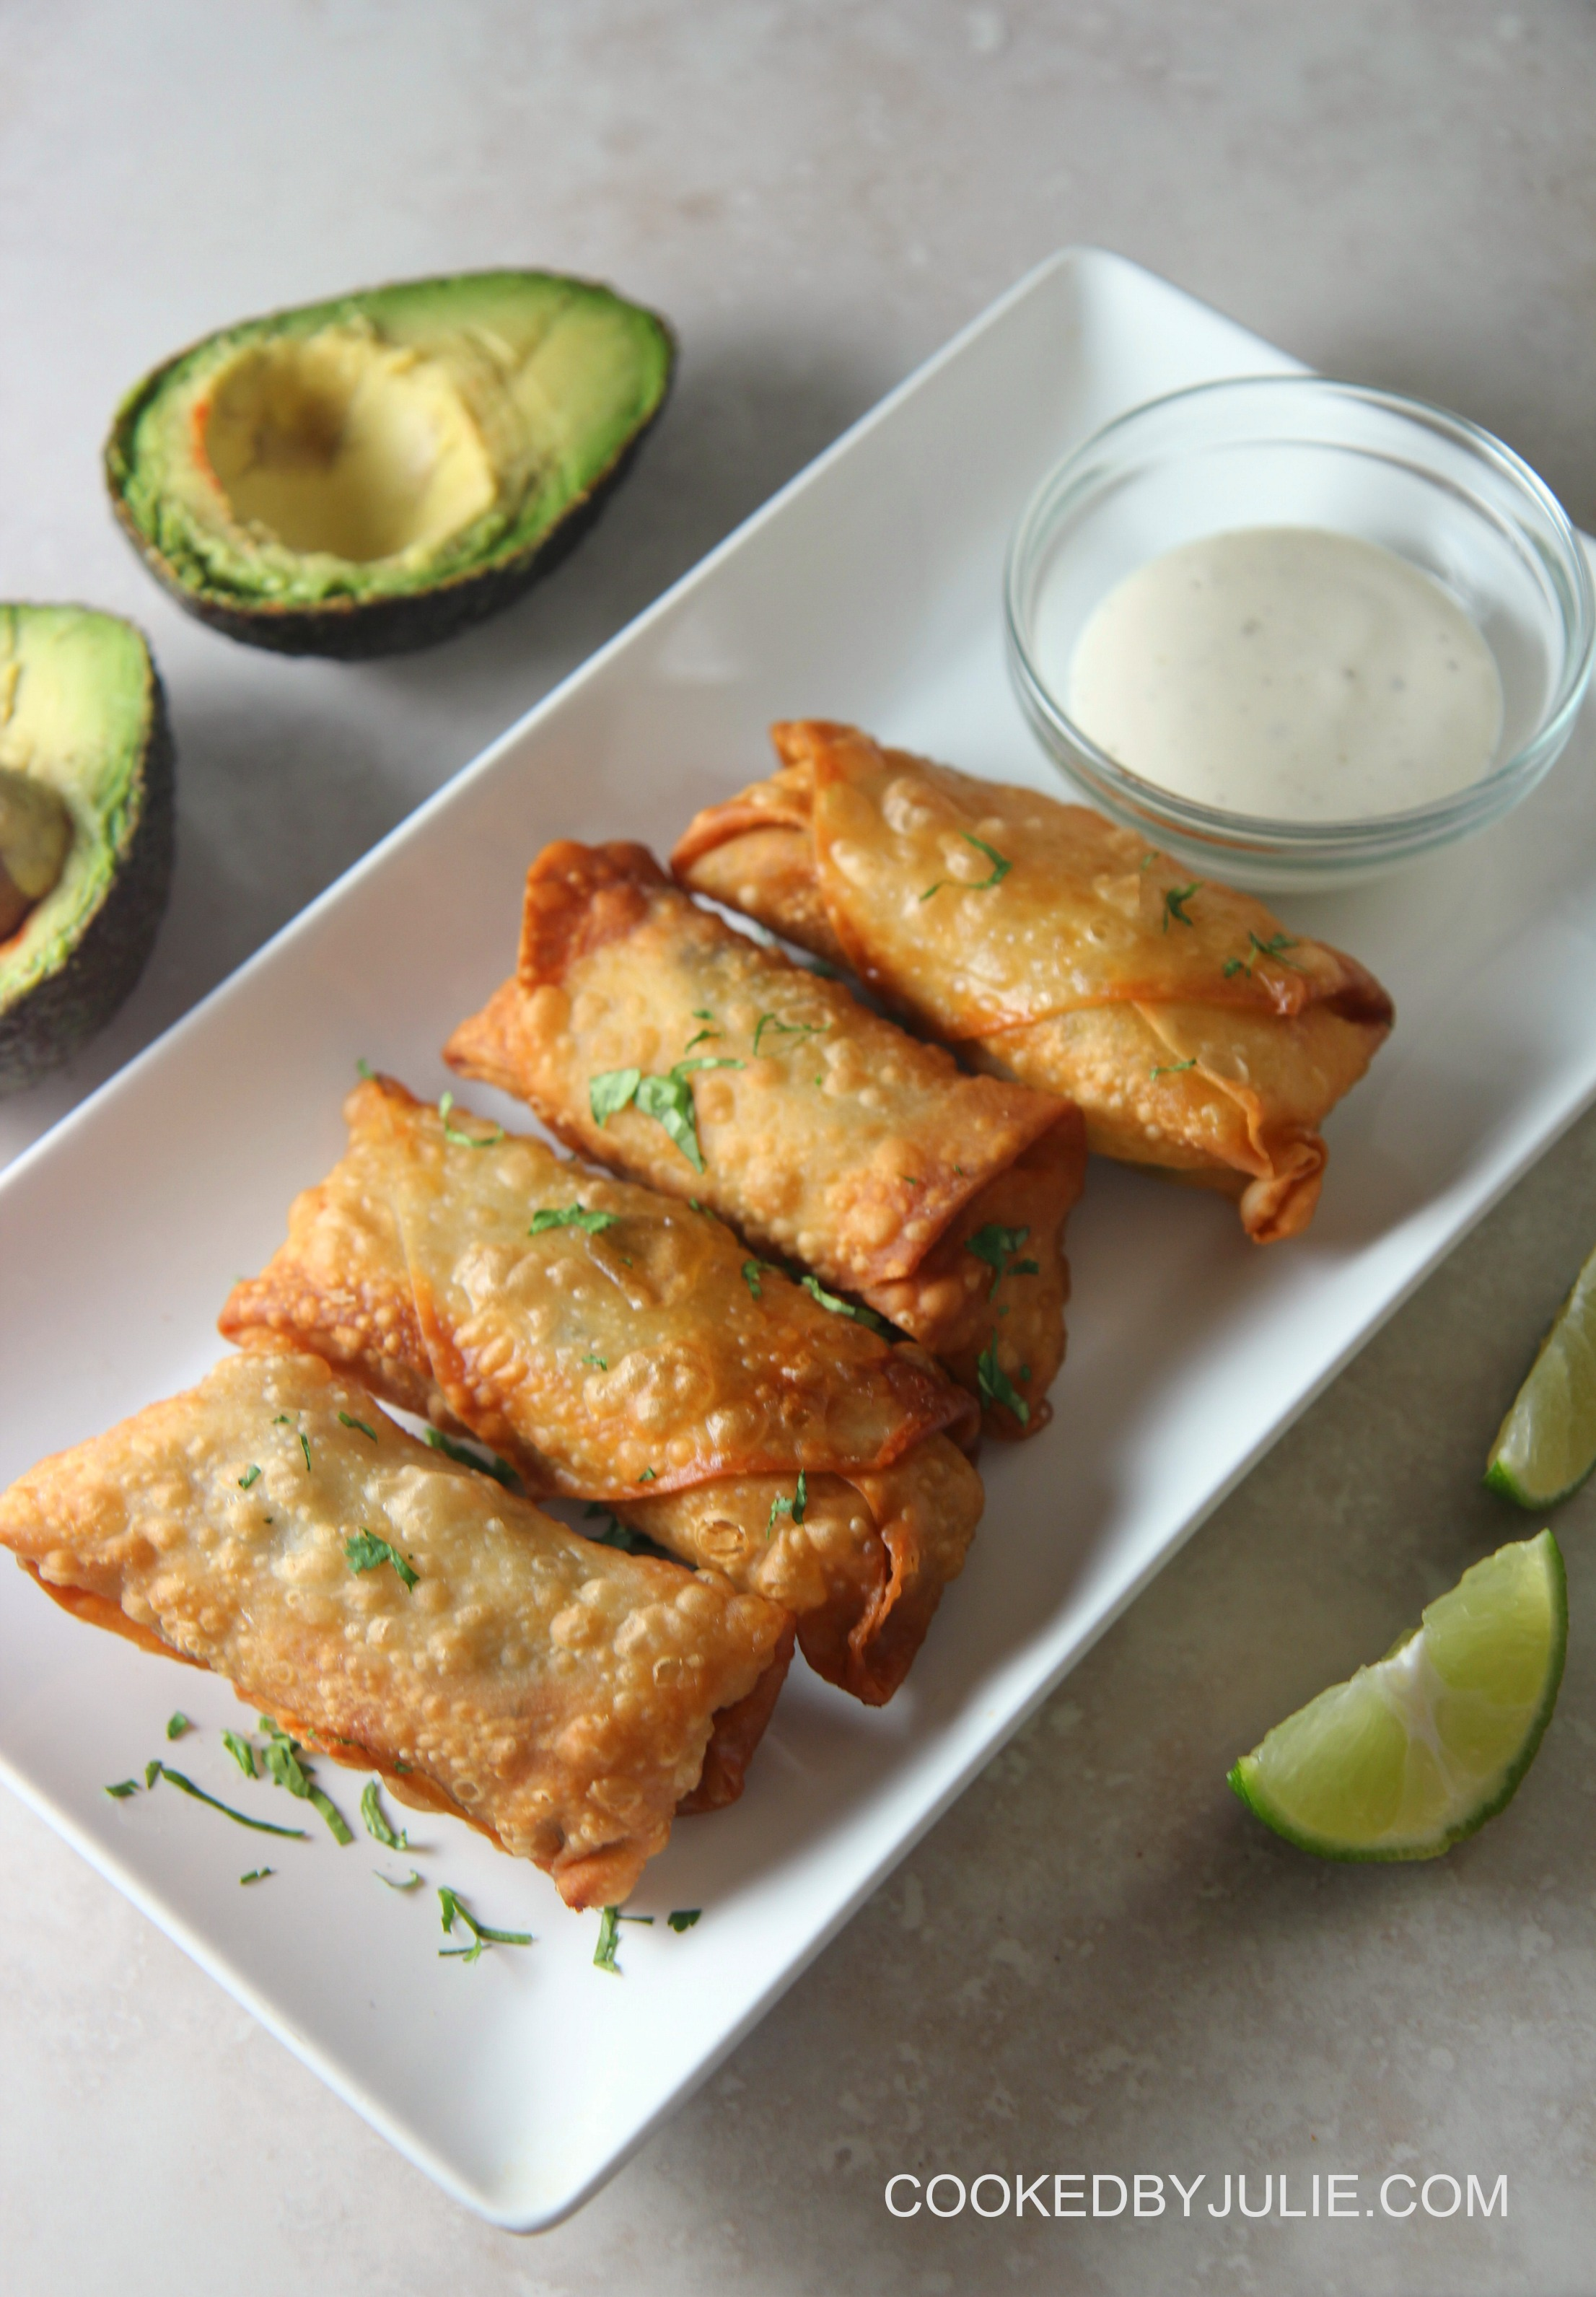 These chicken avocado egg rolls make for the perfect appetizer or game-day finger food.